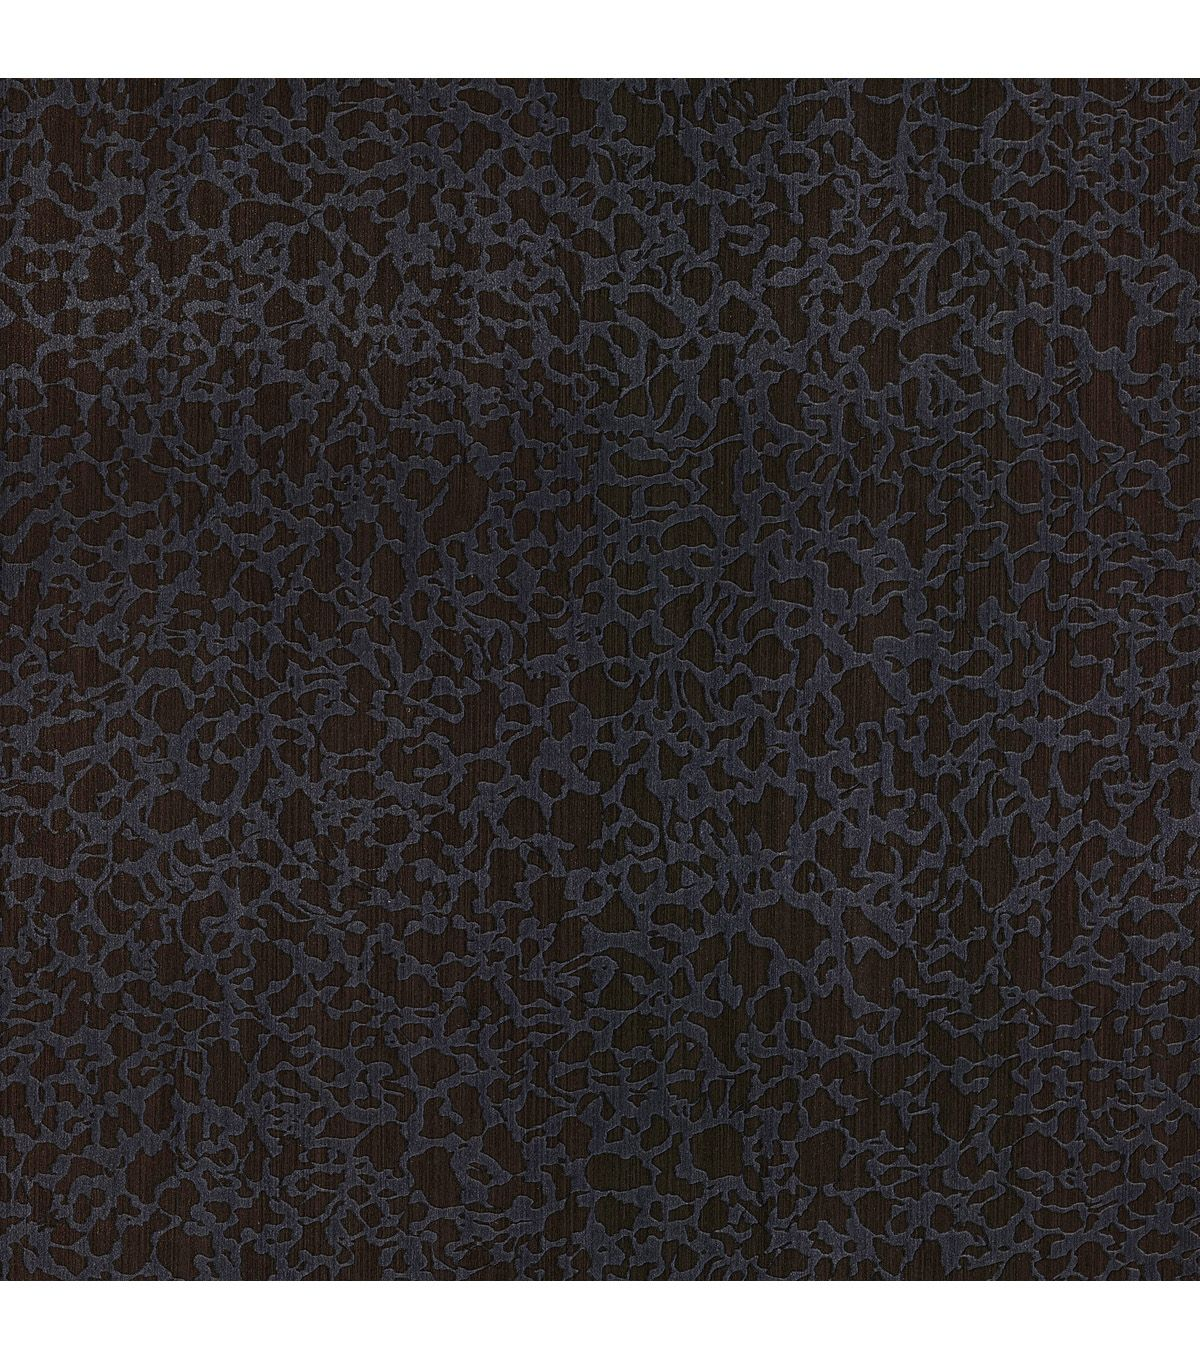 Bangkok Dark Brown Plaster Wallpaper... Wondering if this comes on other colors